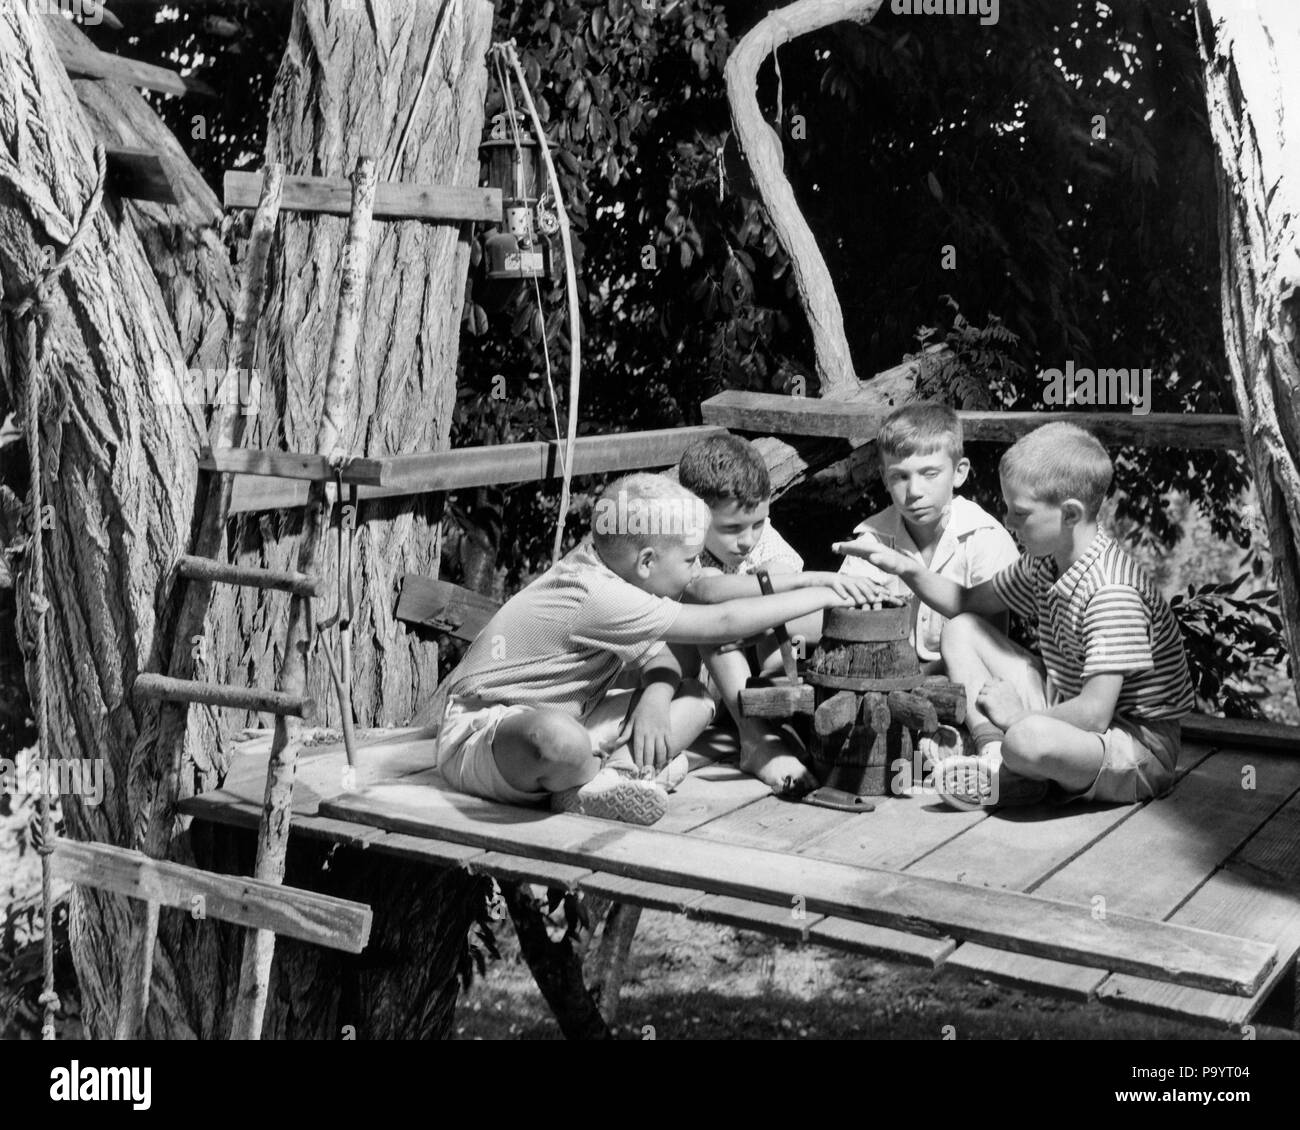 1950s 1960s FOUR BOYS IN TREE HOUSE CLUBHOUSE HOLDING HANDS OVER FAKE CAMPFIRE SWEARING TAKING OATH - b16212 CRS001 HARS EXCITEMENT CONNECTION OATH CLUBHOUSE IMAGINATION SWEARING GROWTH JUVENILES PRE-TEEN PRE-TEEN BOY TOGETHERNESS BLACK AND WHITE CAUCASIAN ETHNICITY OLD FASHIONED TREE HOUSE - Stock Image